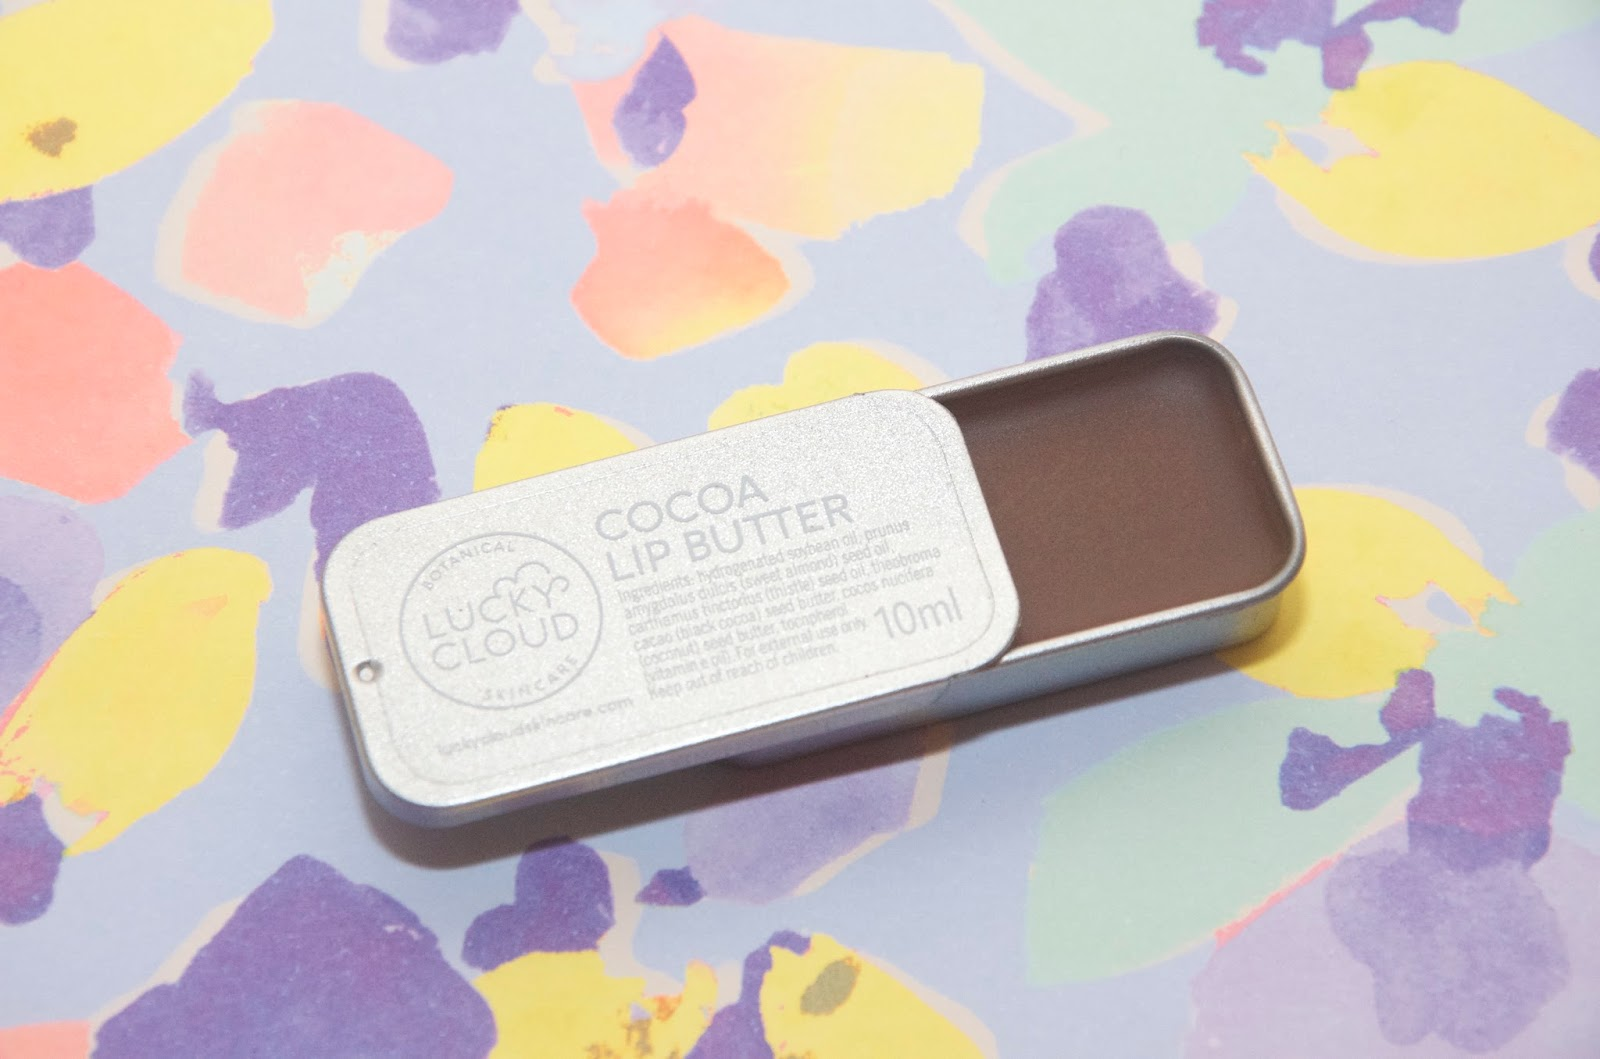 Vegan cocoa lip butter in silver tin on floral background